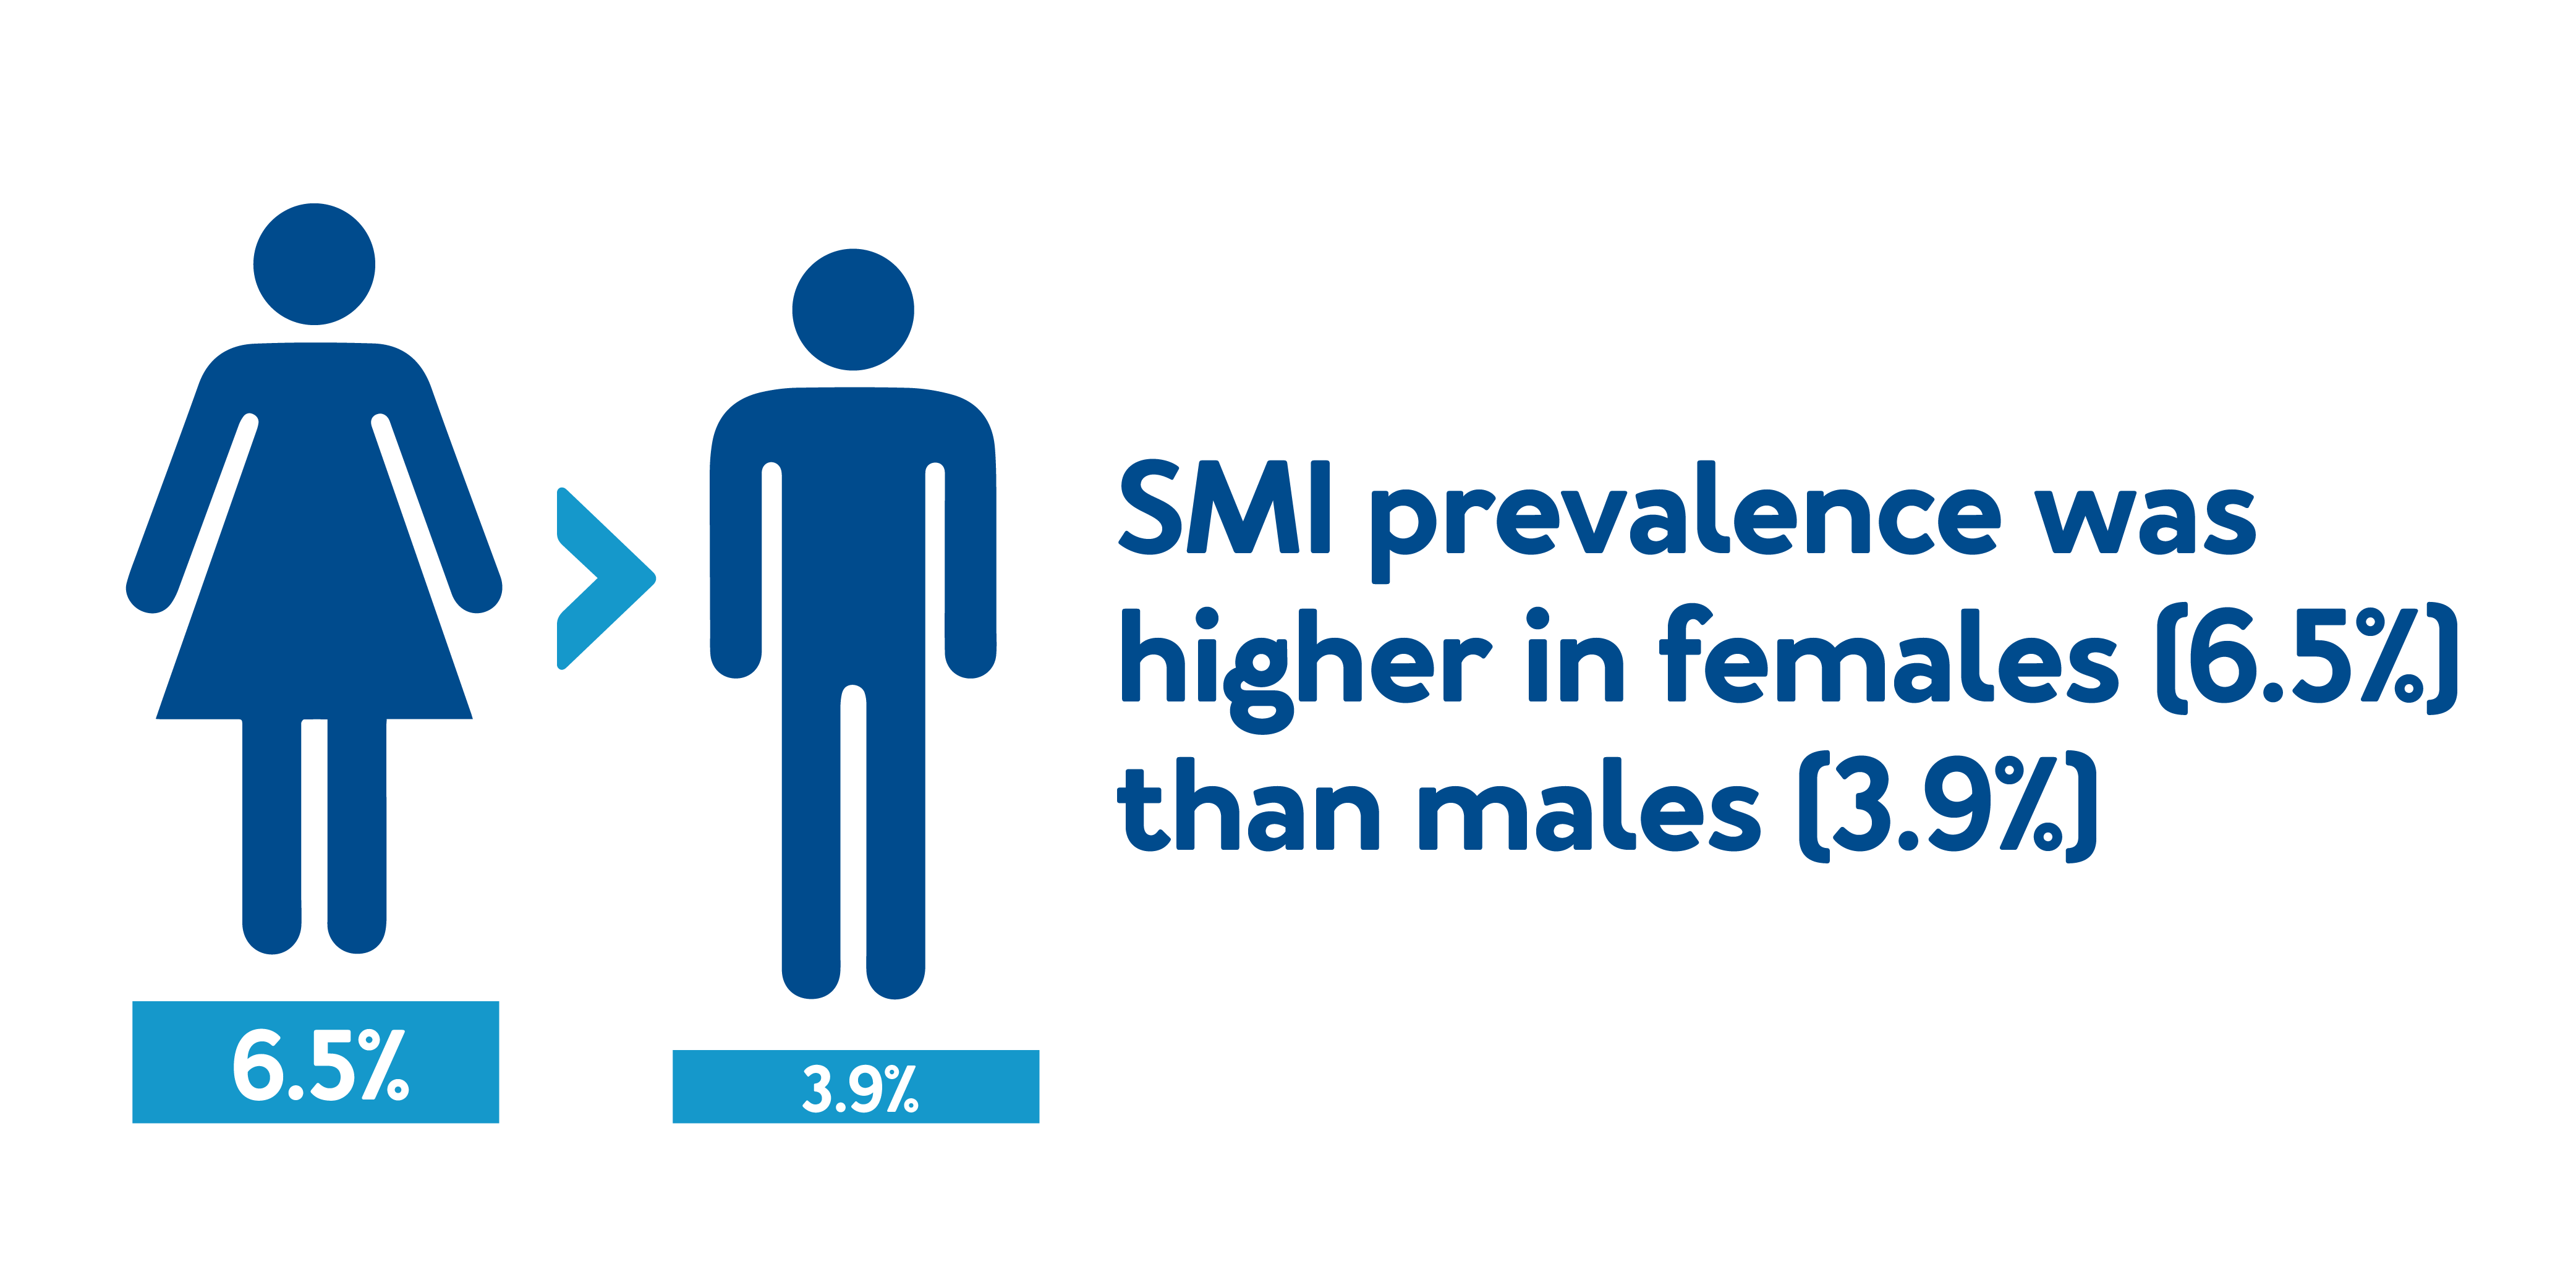 SMI prevalence was higher in females (6.5%) than males (3.9%).